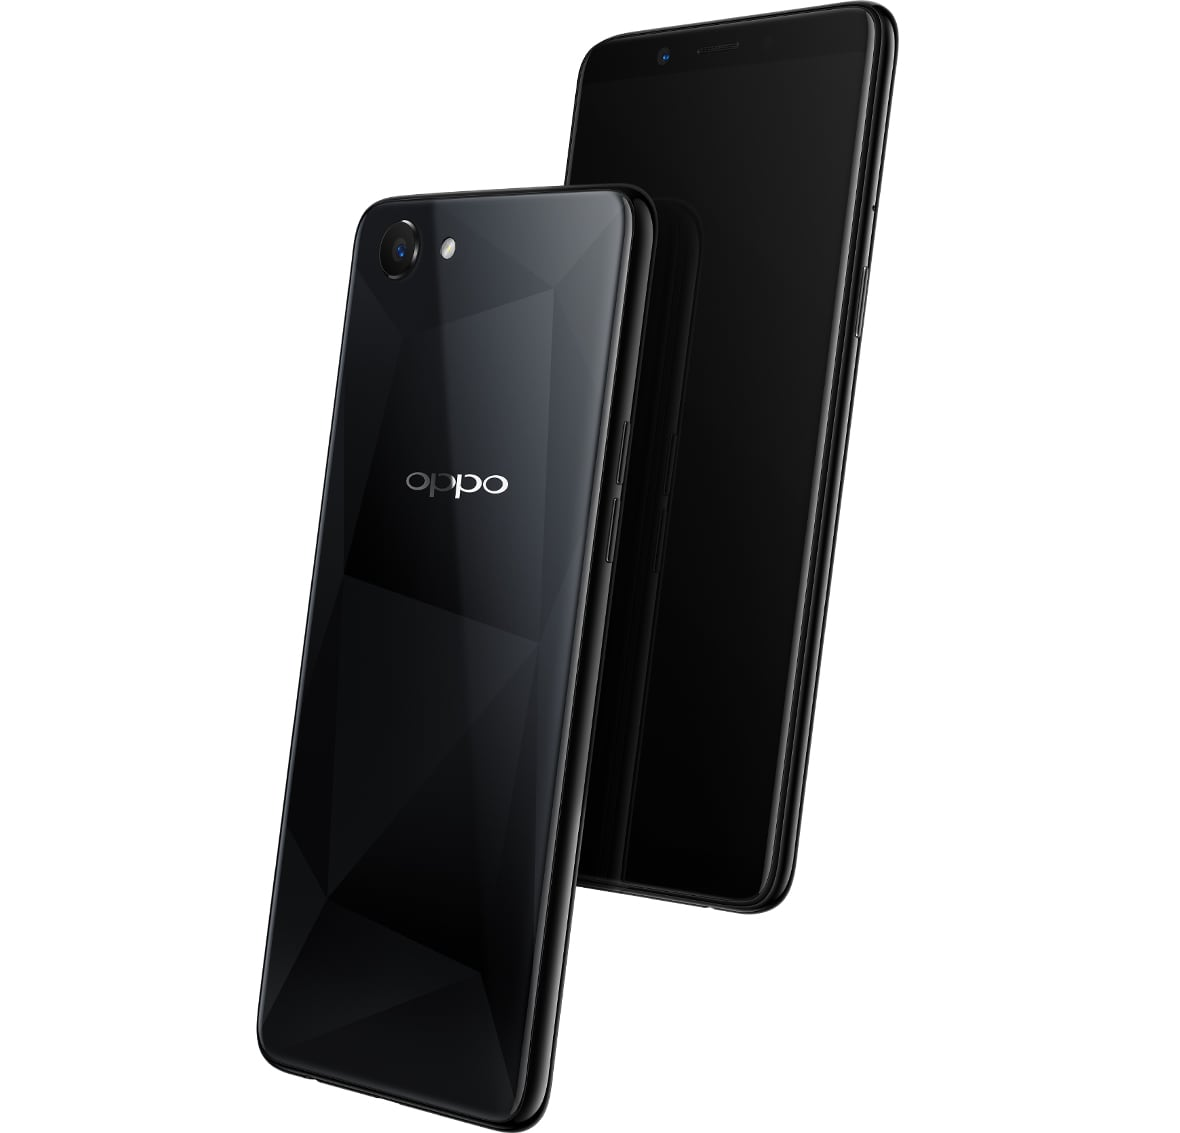 OPPO F7 Youth, AI-powered Selfie, Capture the Real You